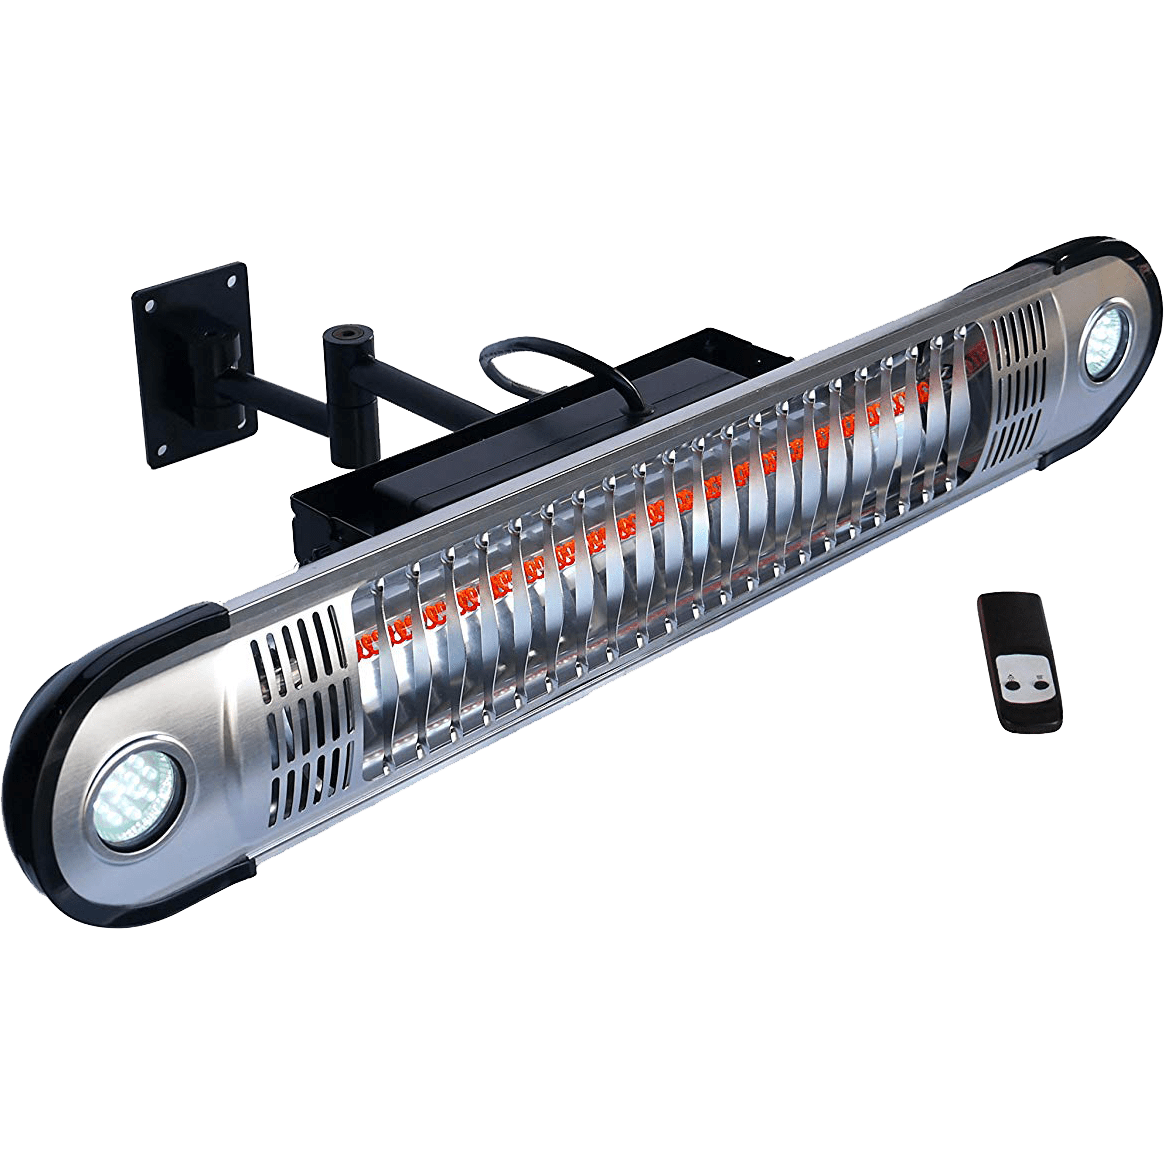 Buy Cheap Ener G Wall Mount Infrared Tube Patio Heater